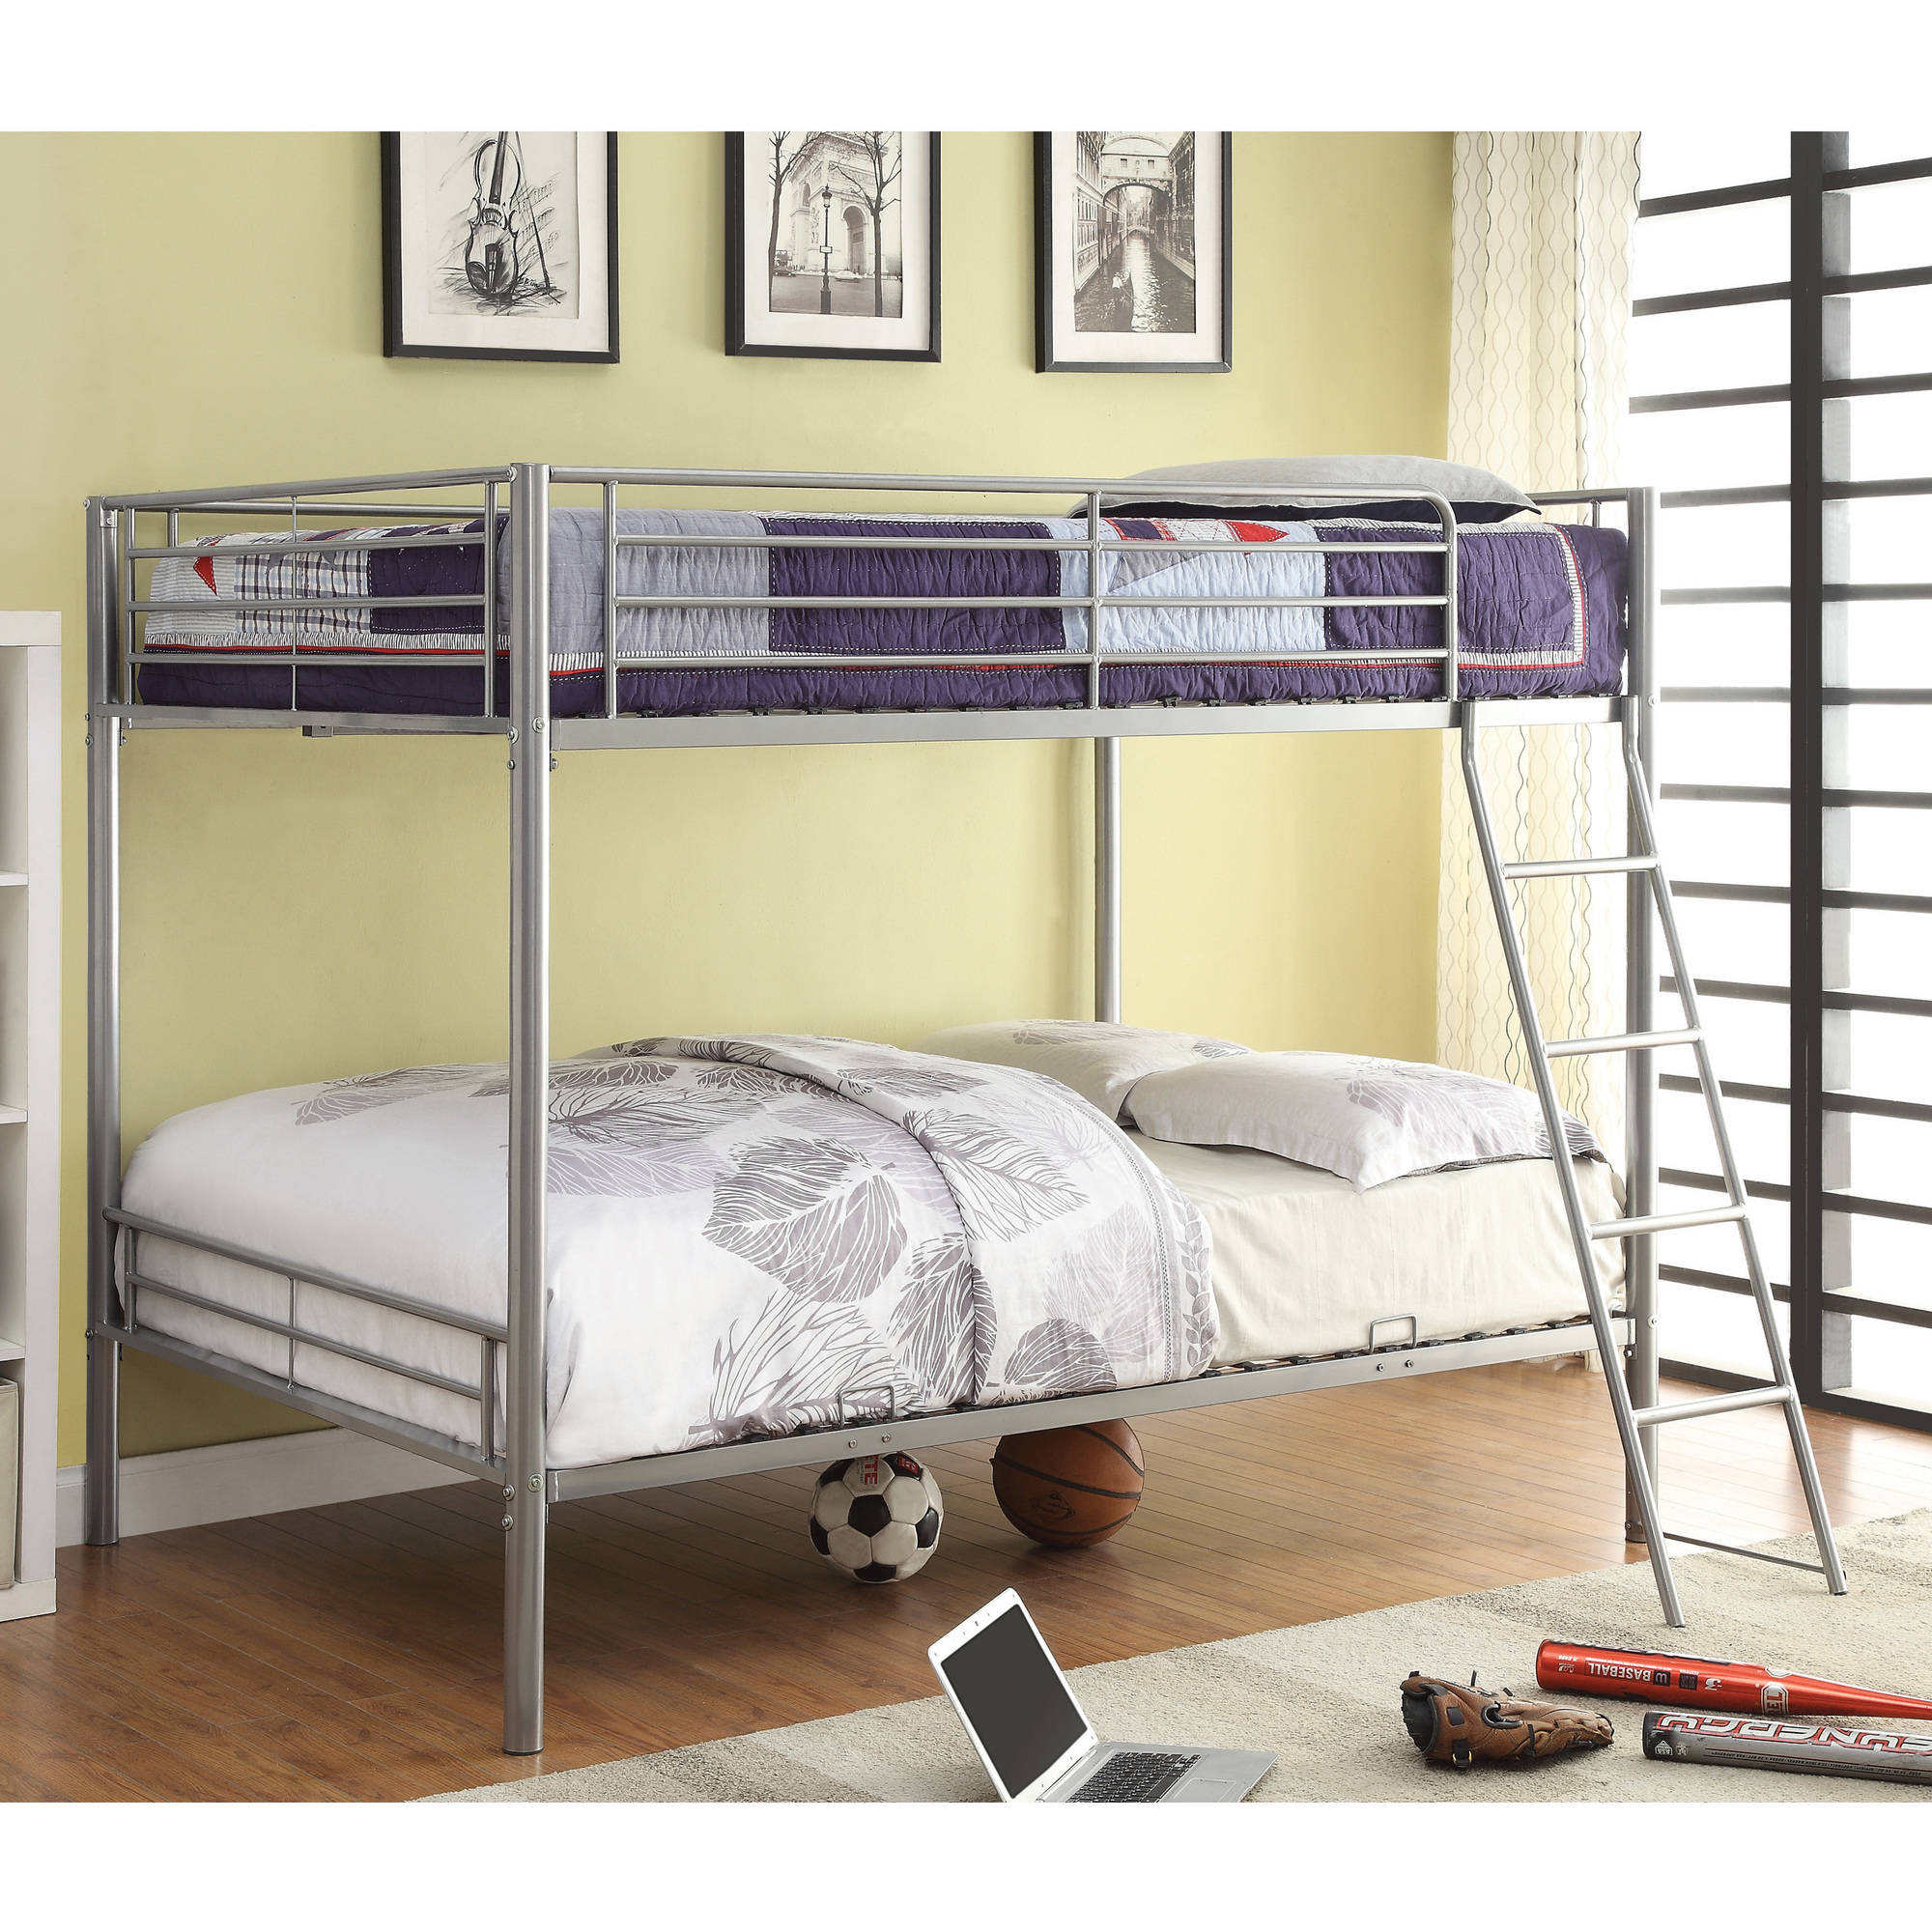 Coaster Full/Full Bunk Bed in Silver Finish